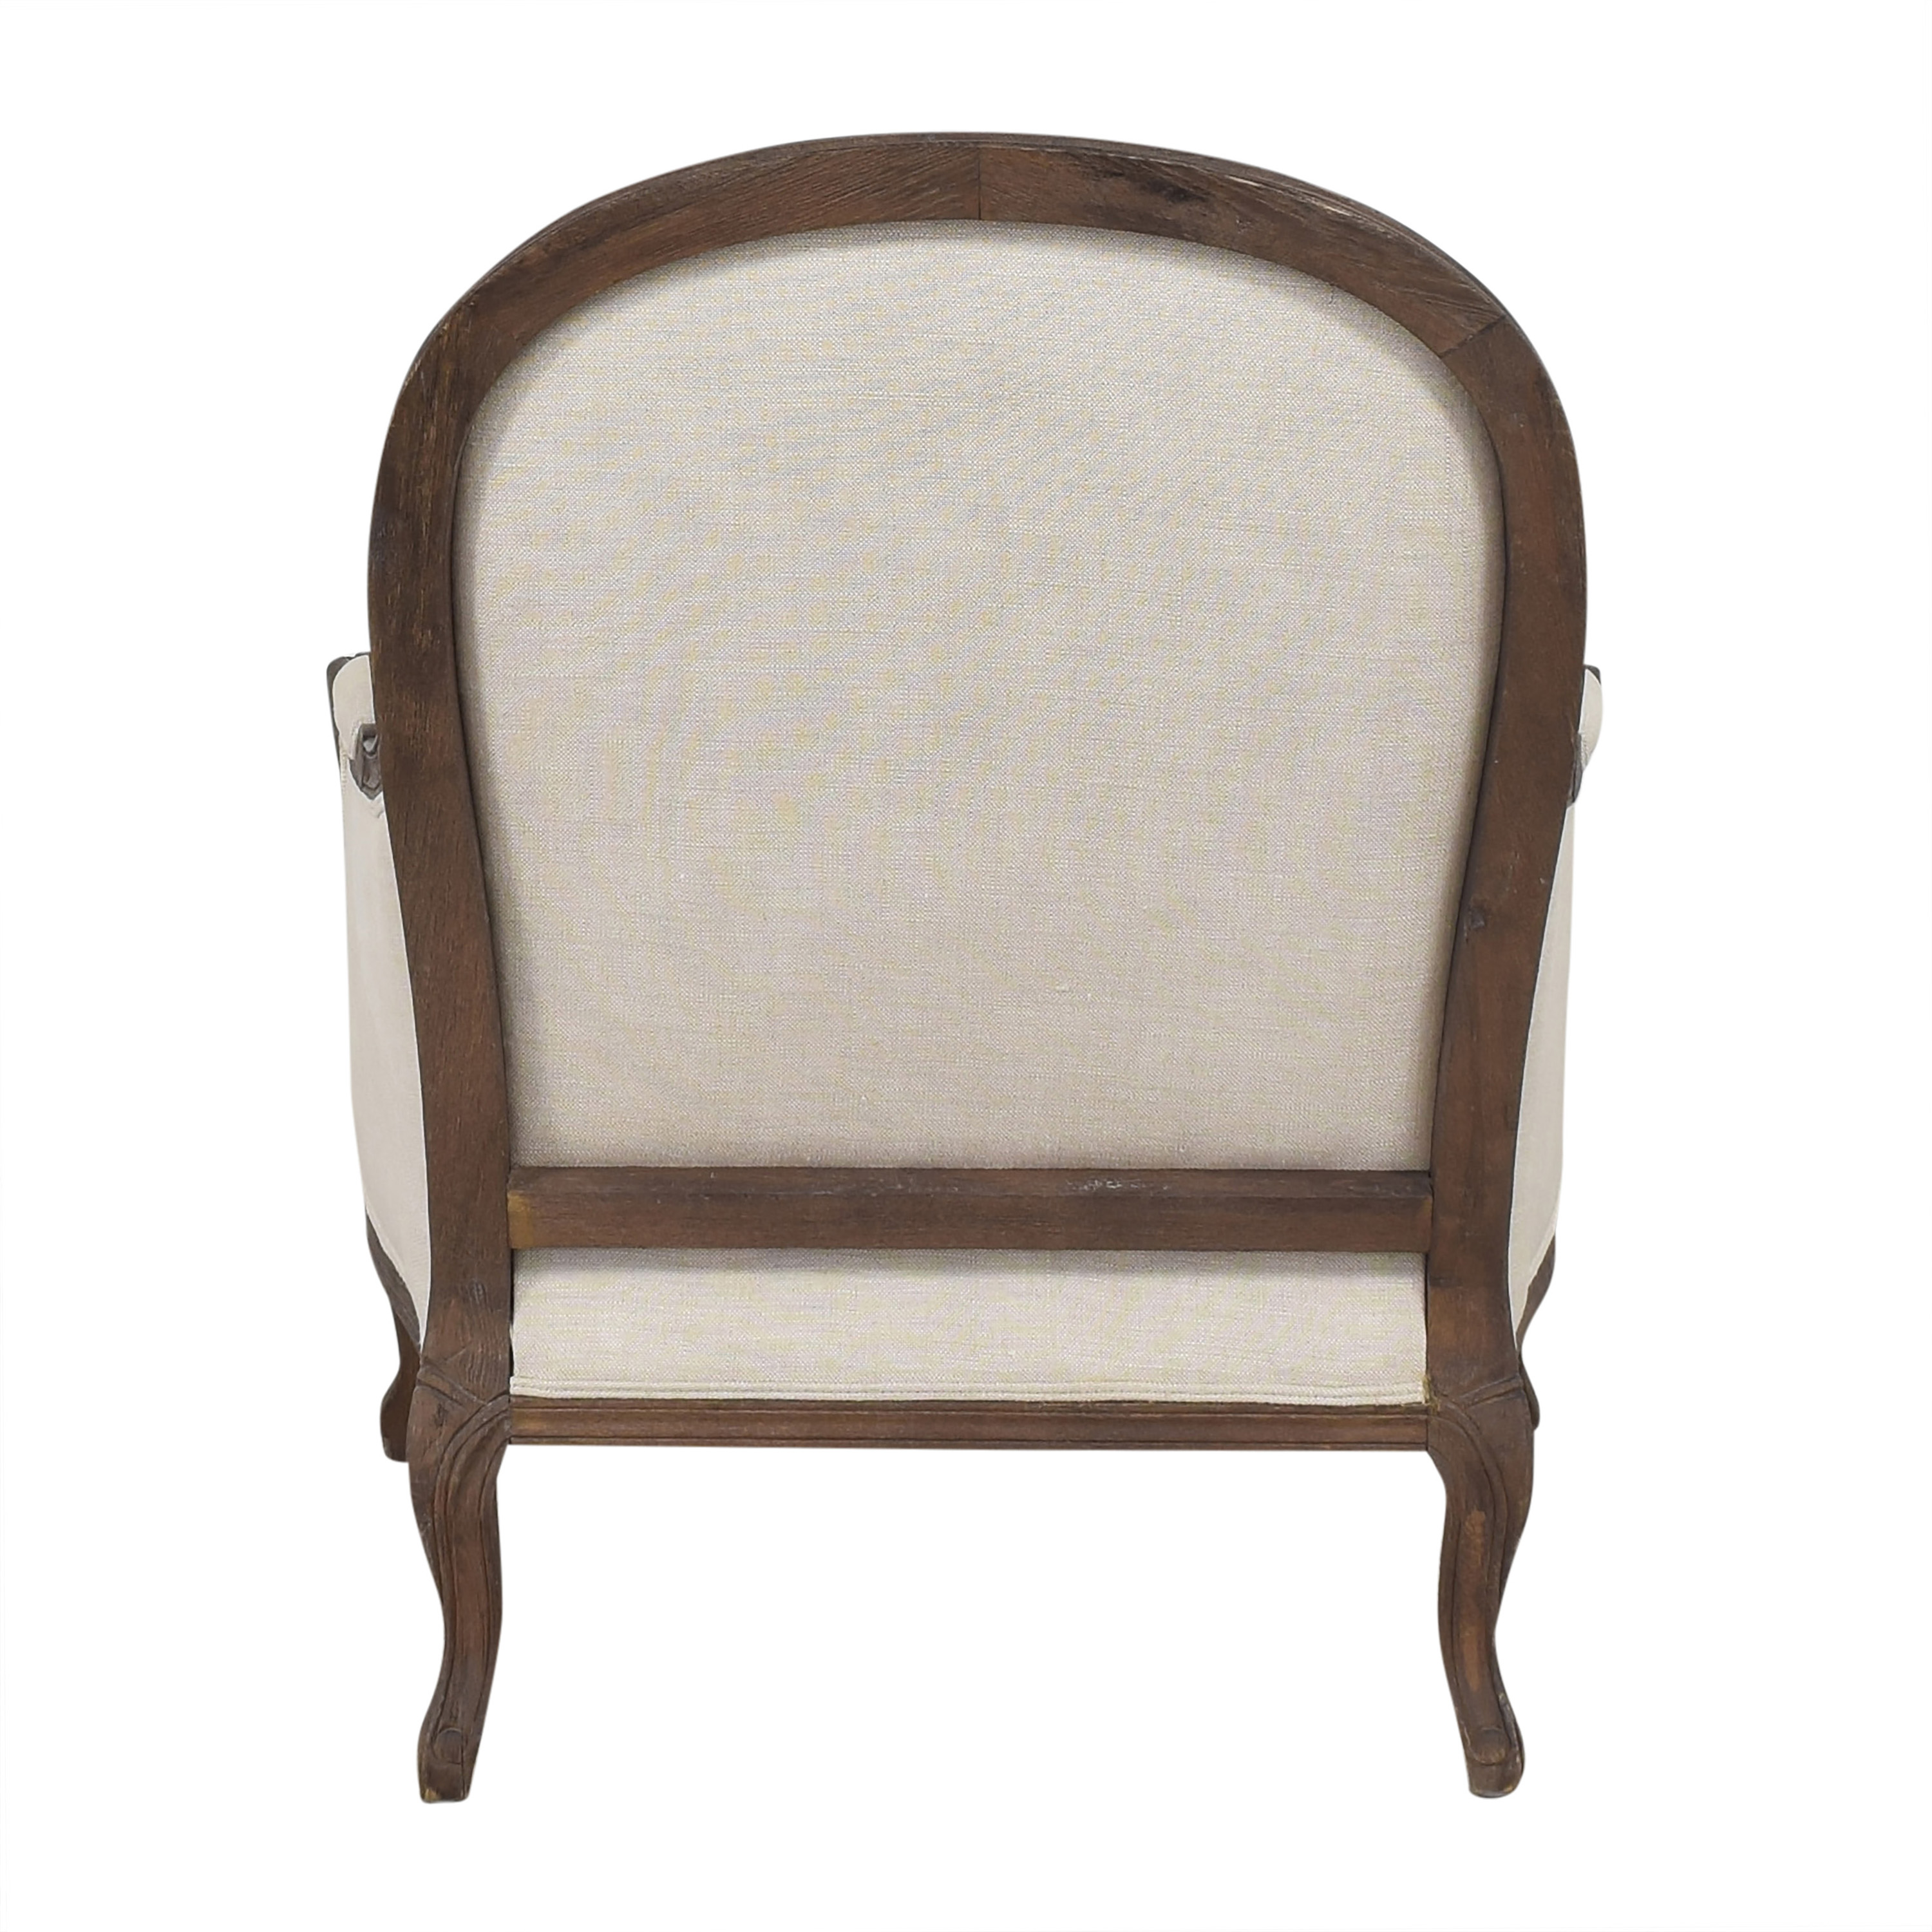 Restoration Hardware Restoration Hardware Lounge Chair Accent Chairs